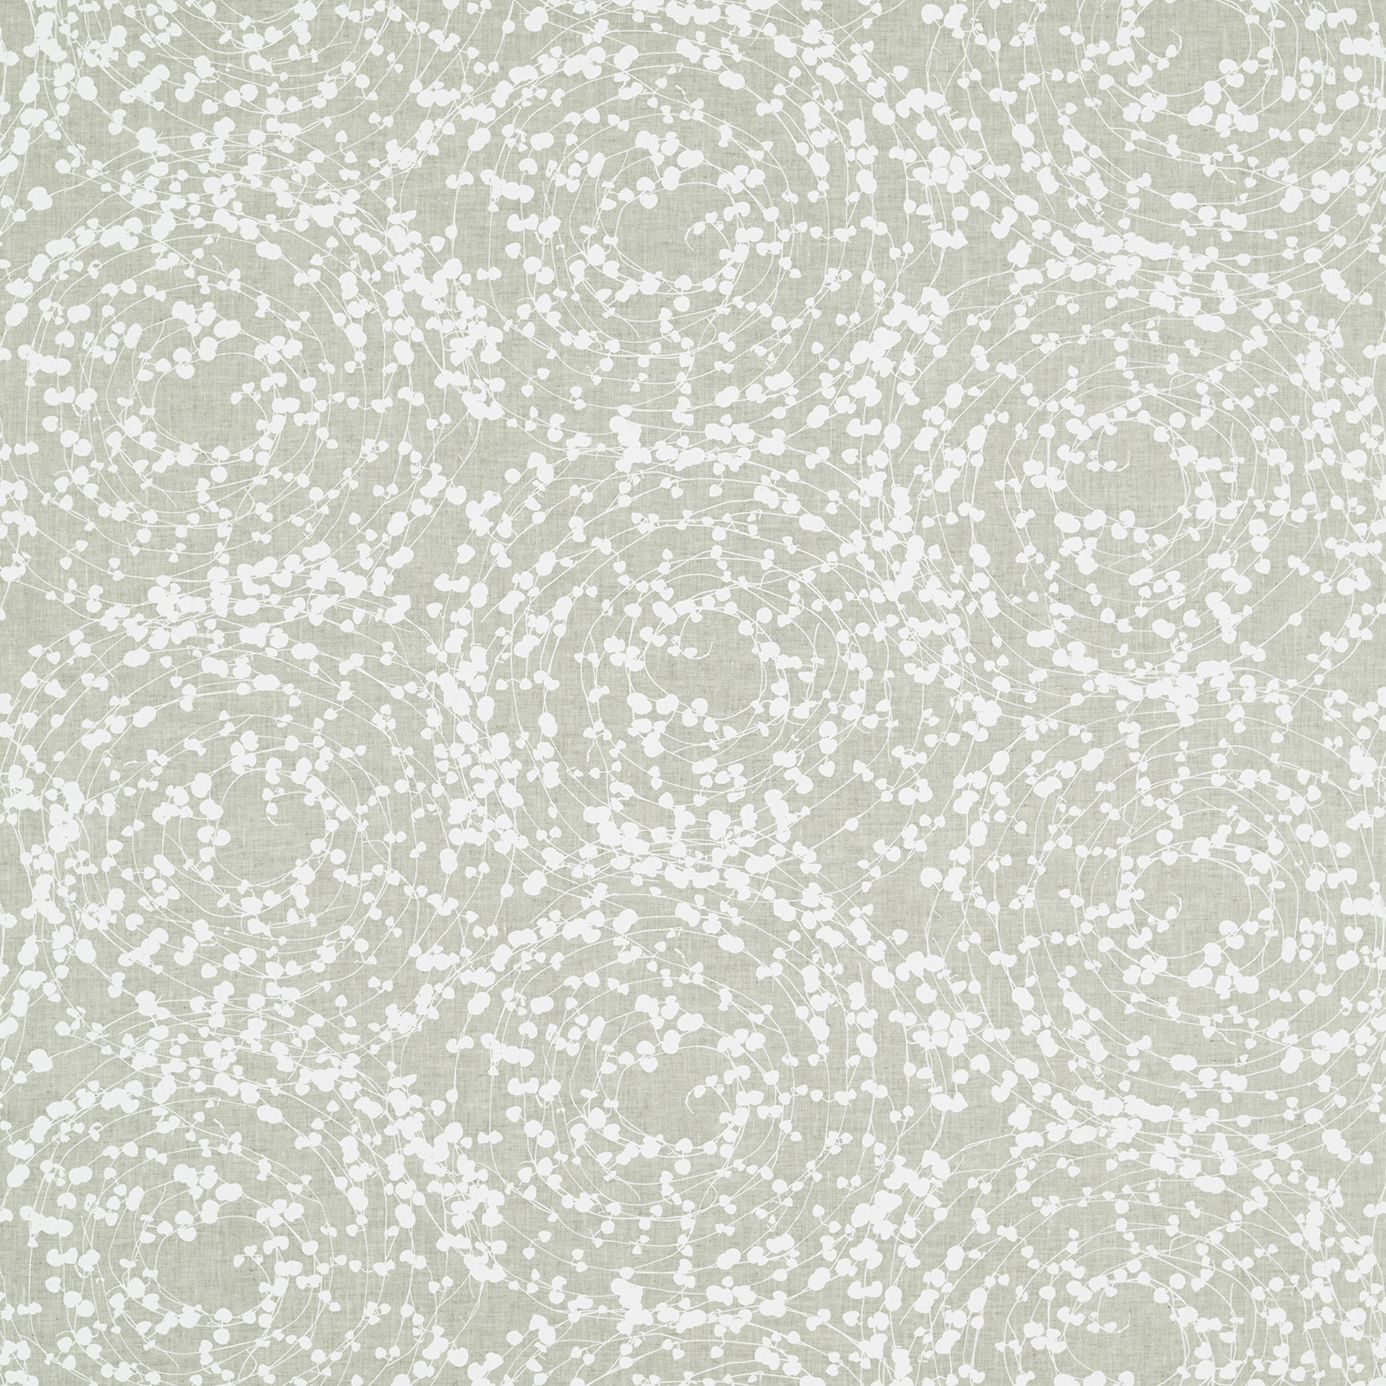 A succulent vine with sweet, heart-shaped leaves decorates this sophisticated fabric from the Lilaea collection. Heart Vine 120554 Chalk/Linen by #Harlequin #fabric